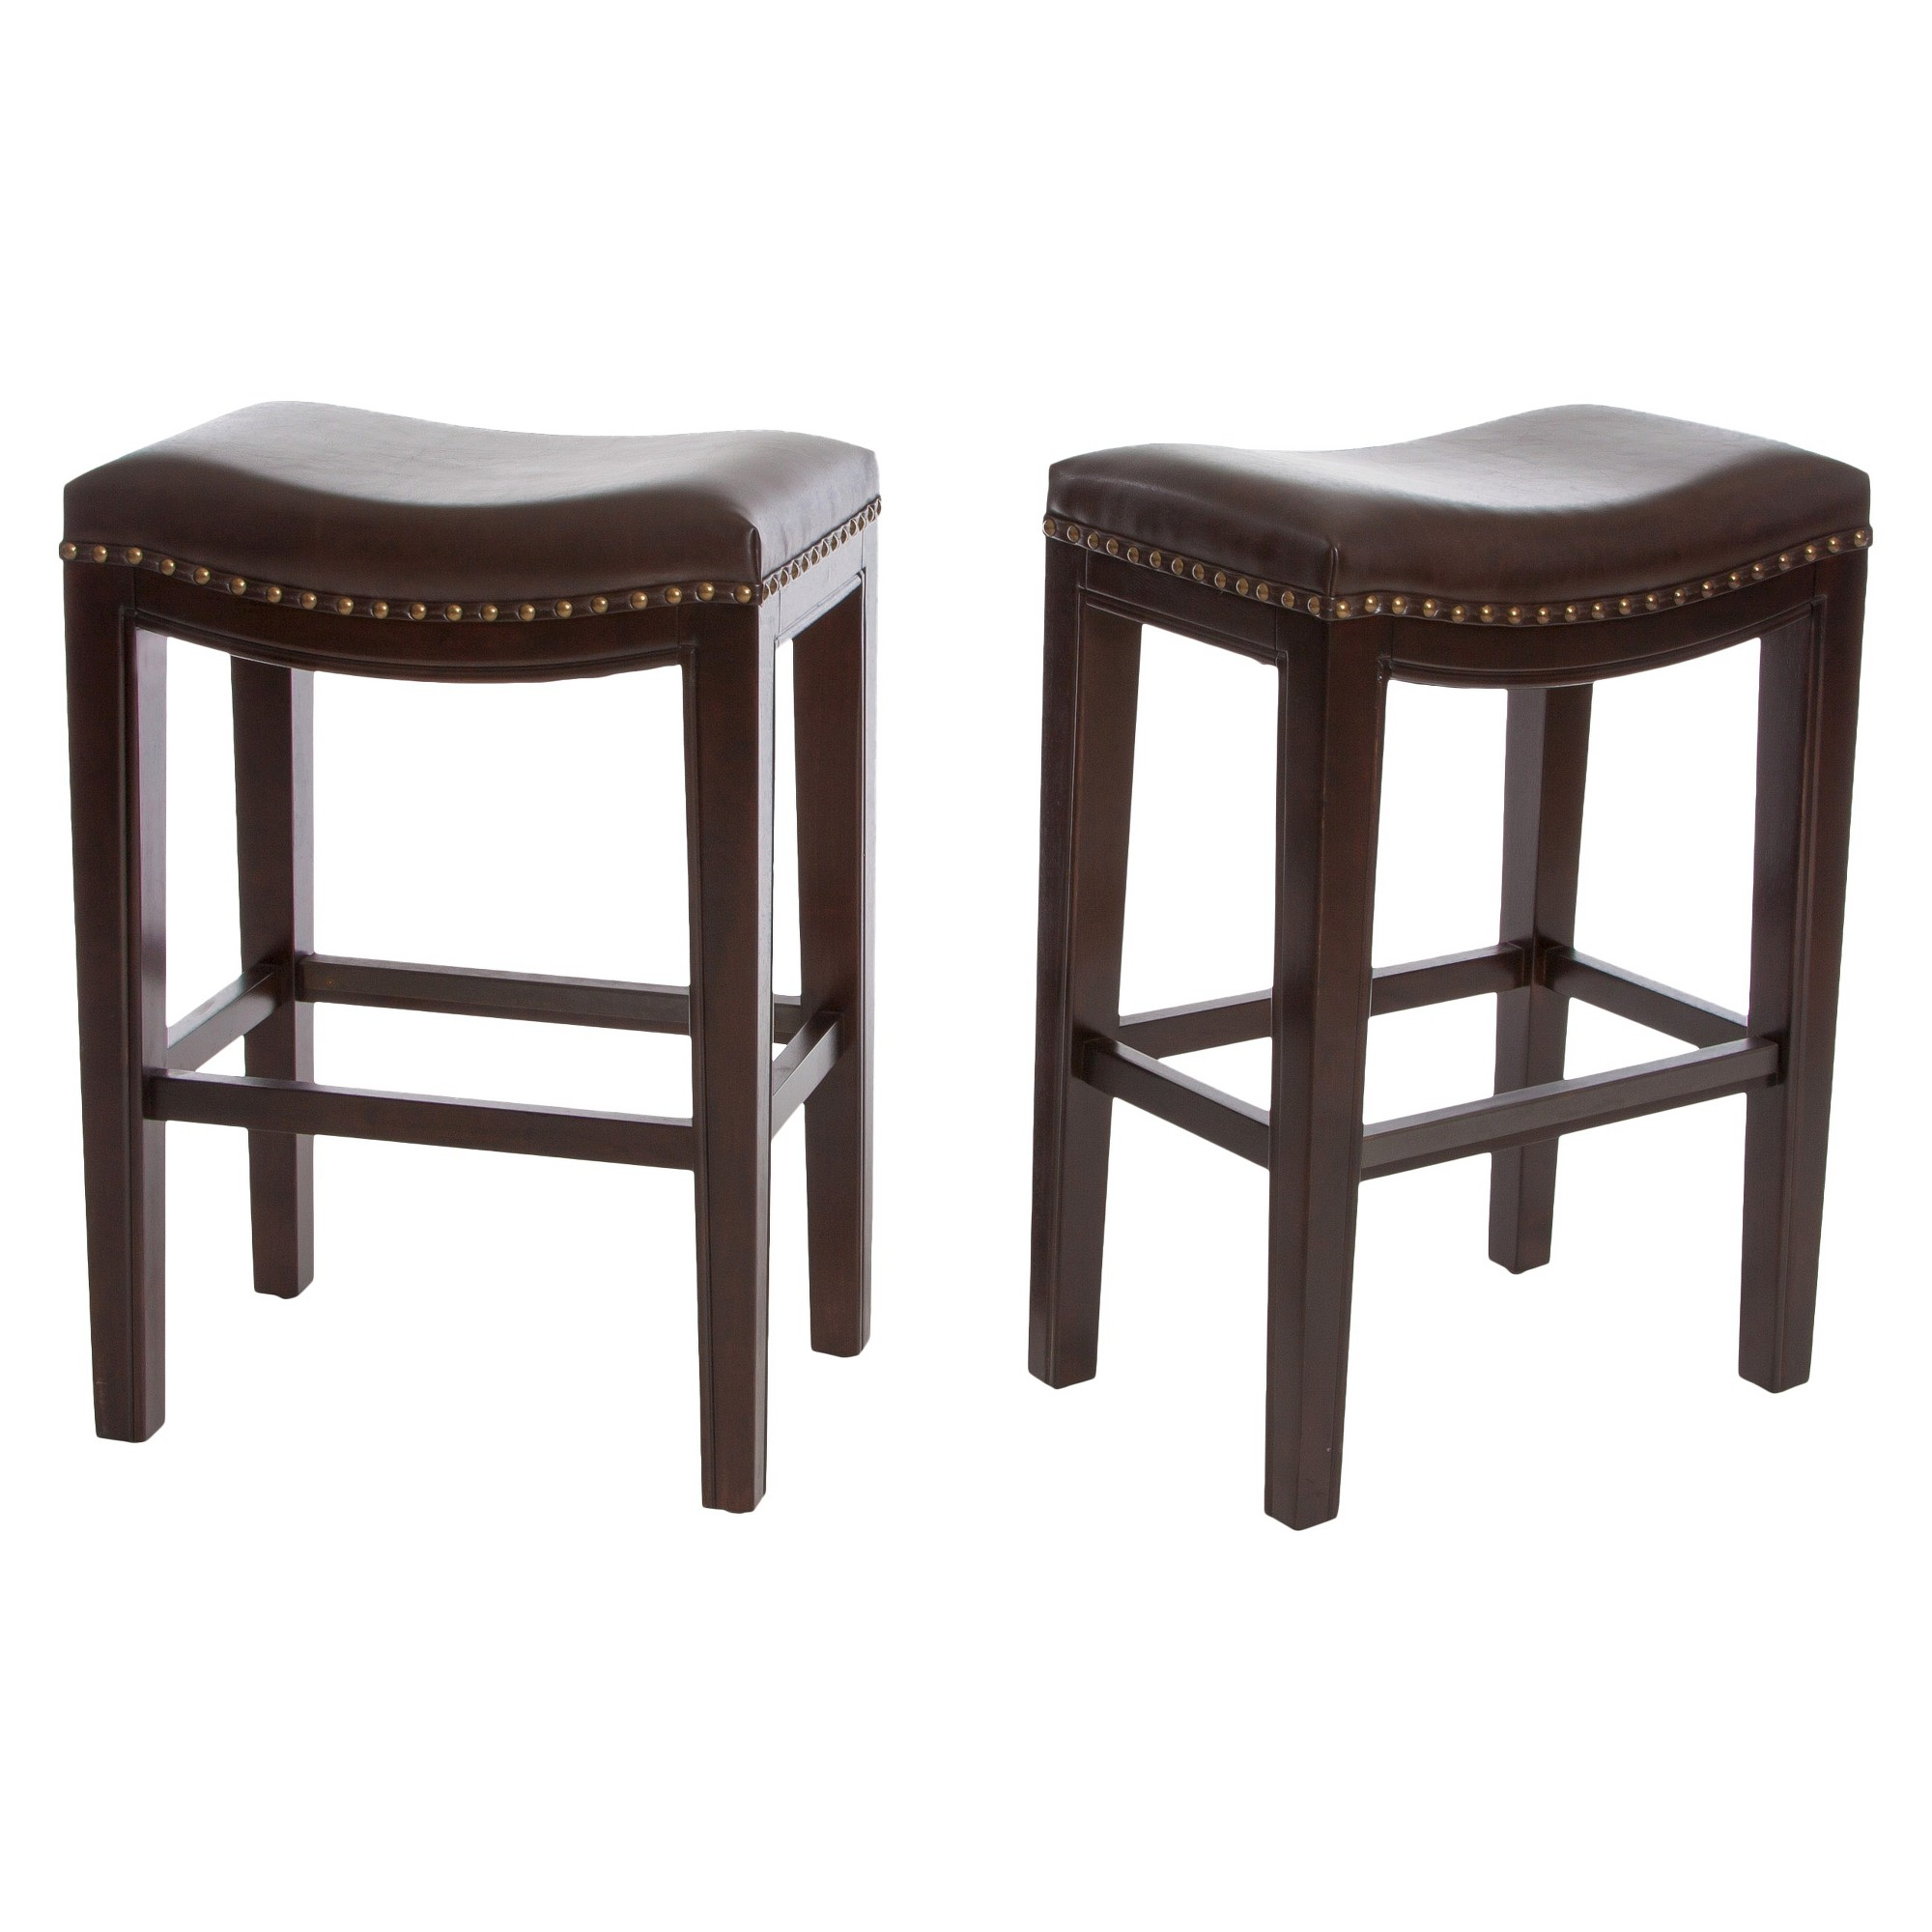 Lids Counter Stool Green Set Of 2 Counter Stools Bar Stools Counter Stools Backless